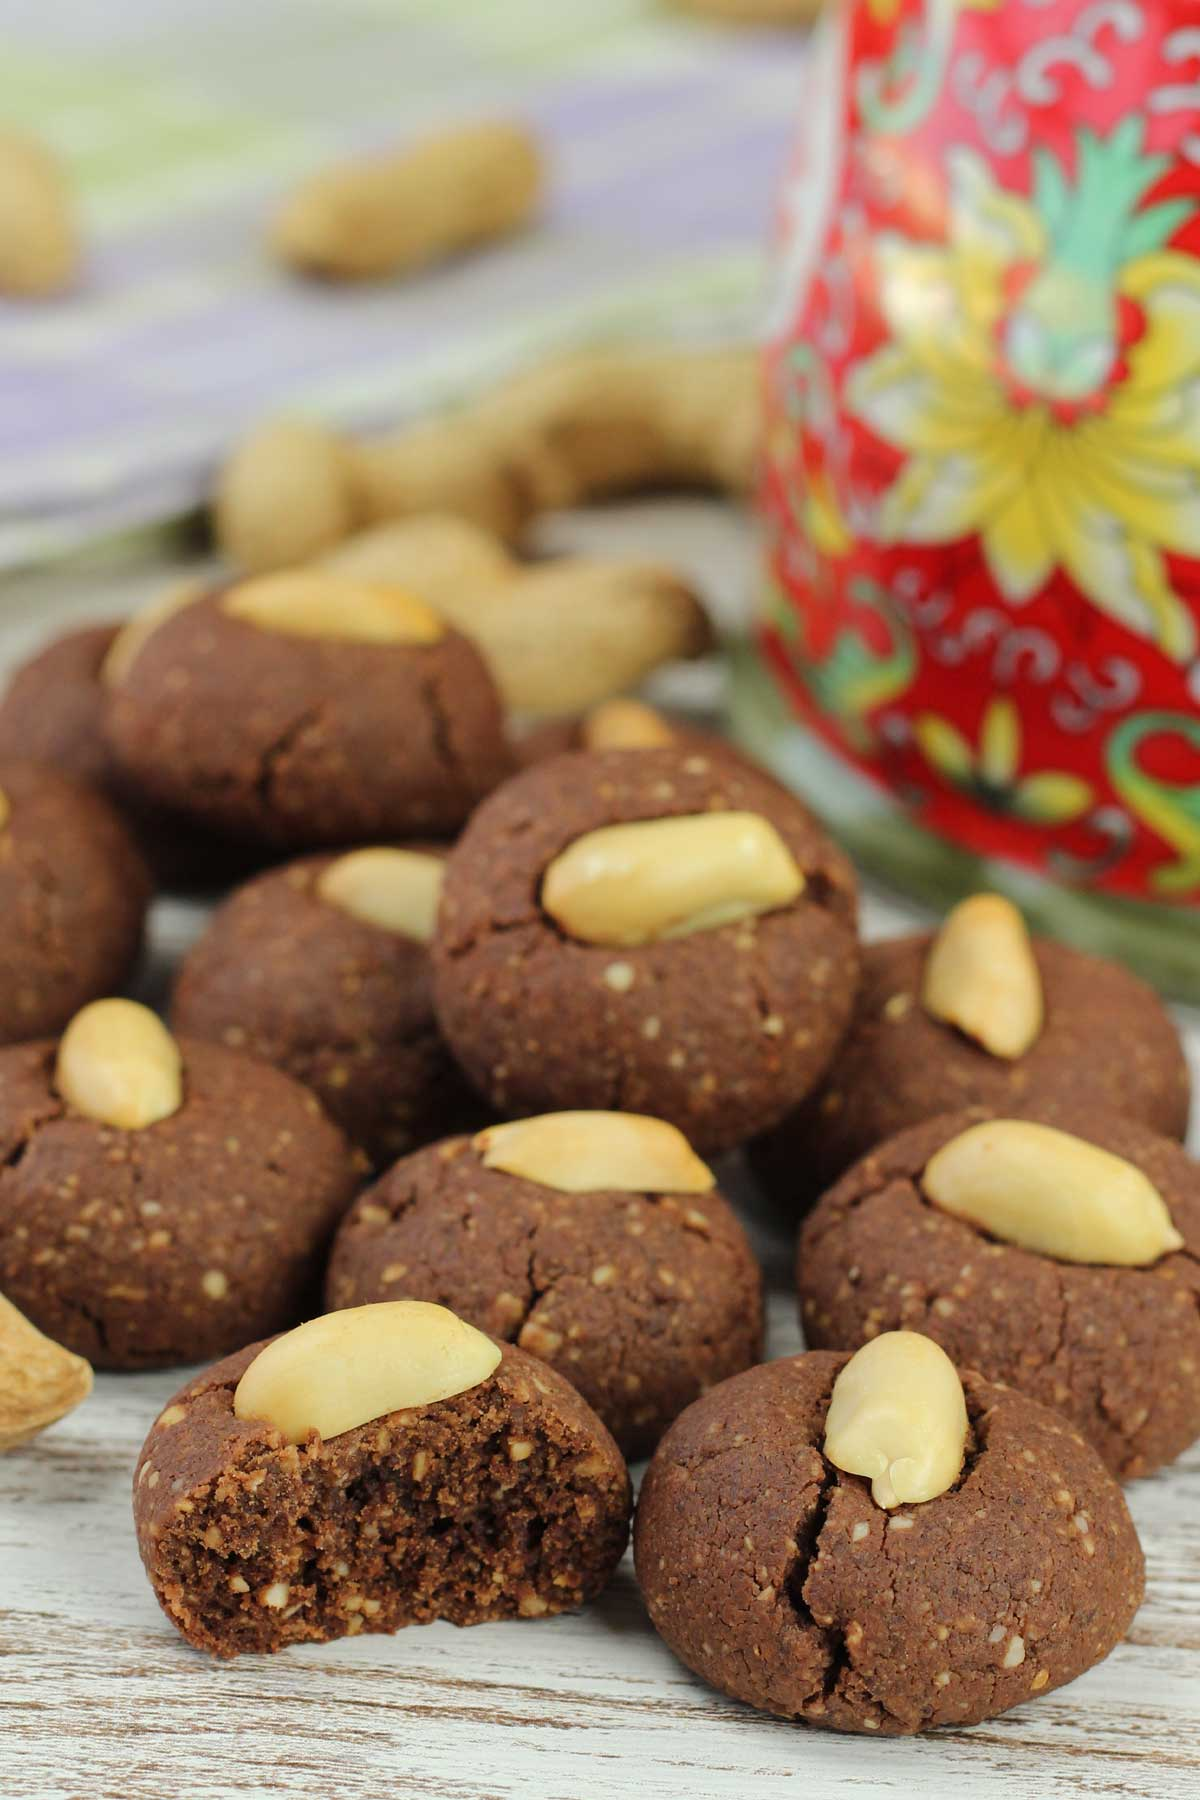 Chocolate Peanut Cookies on a table